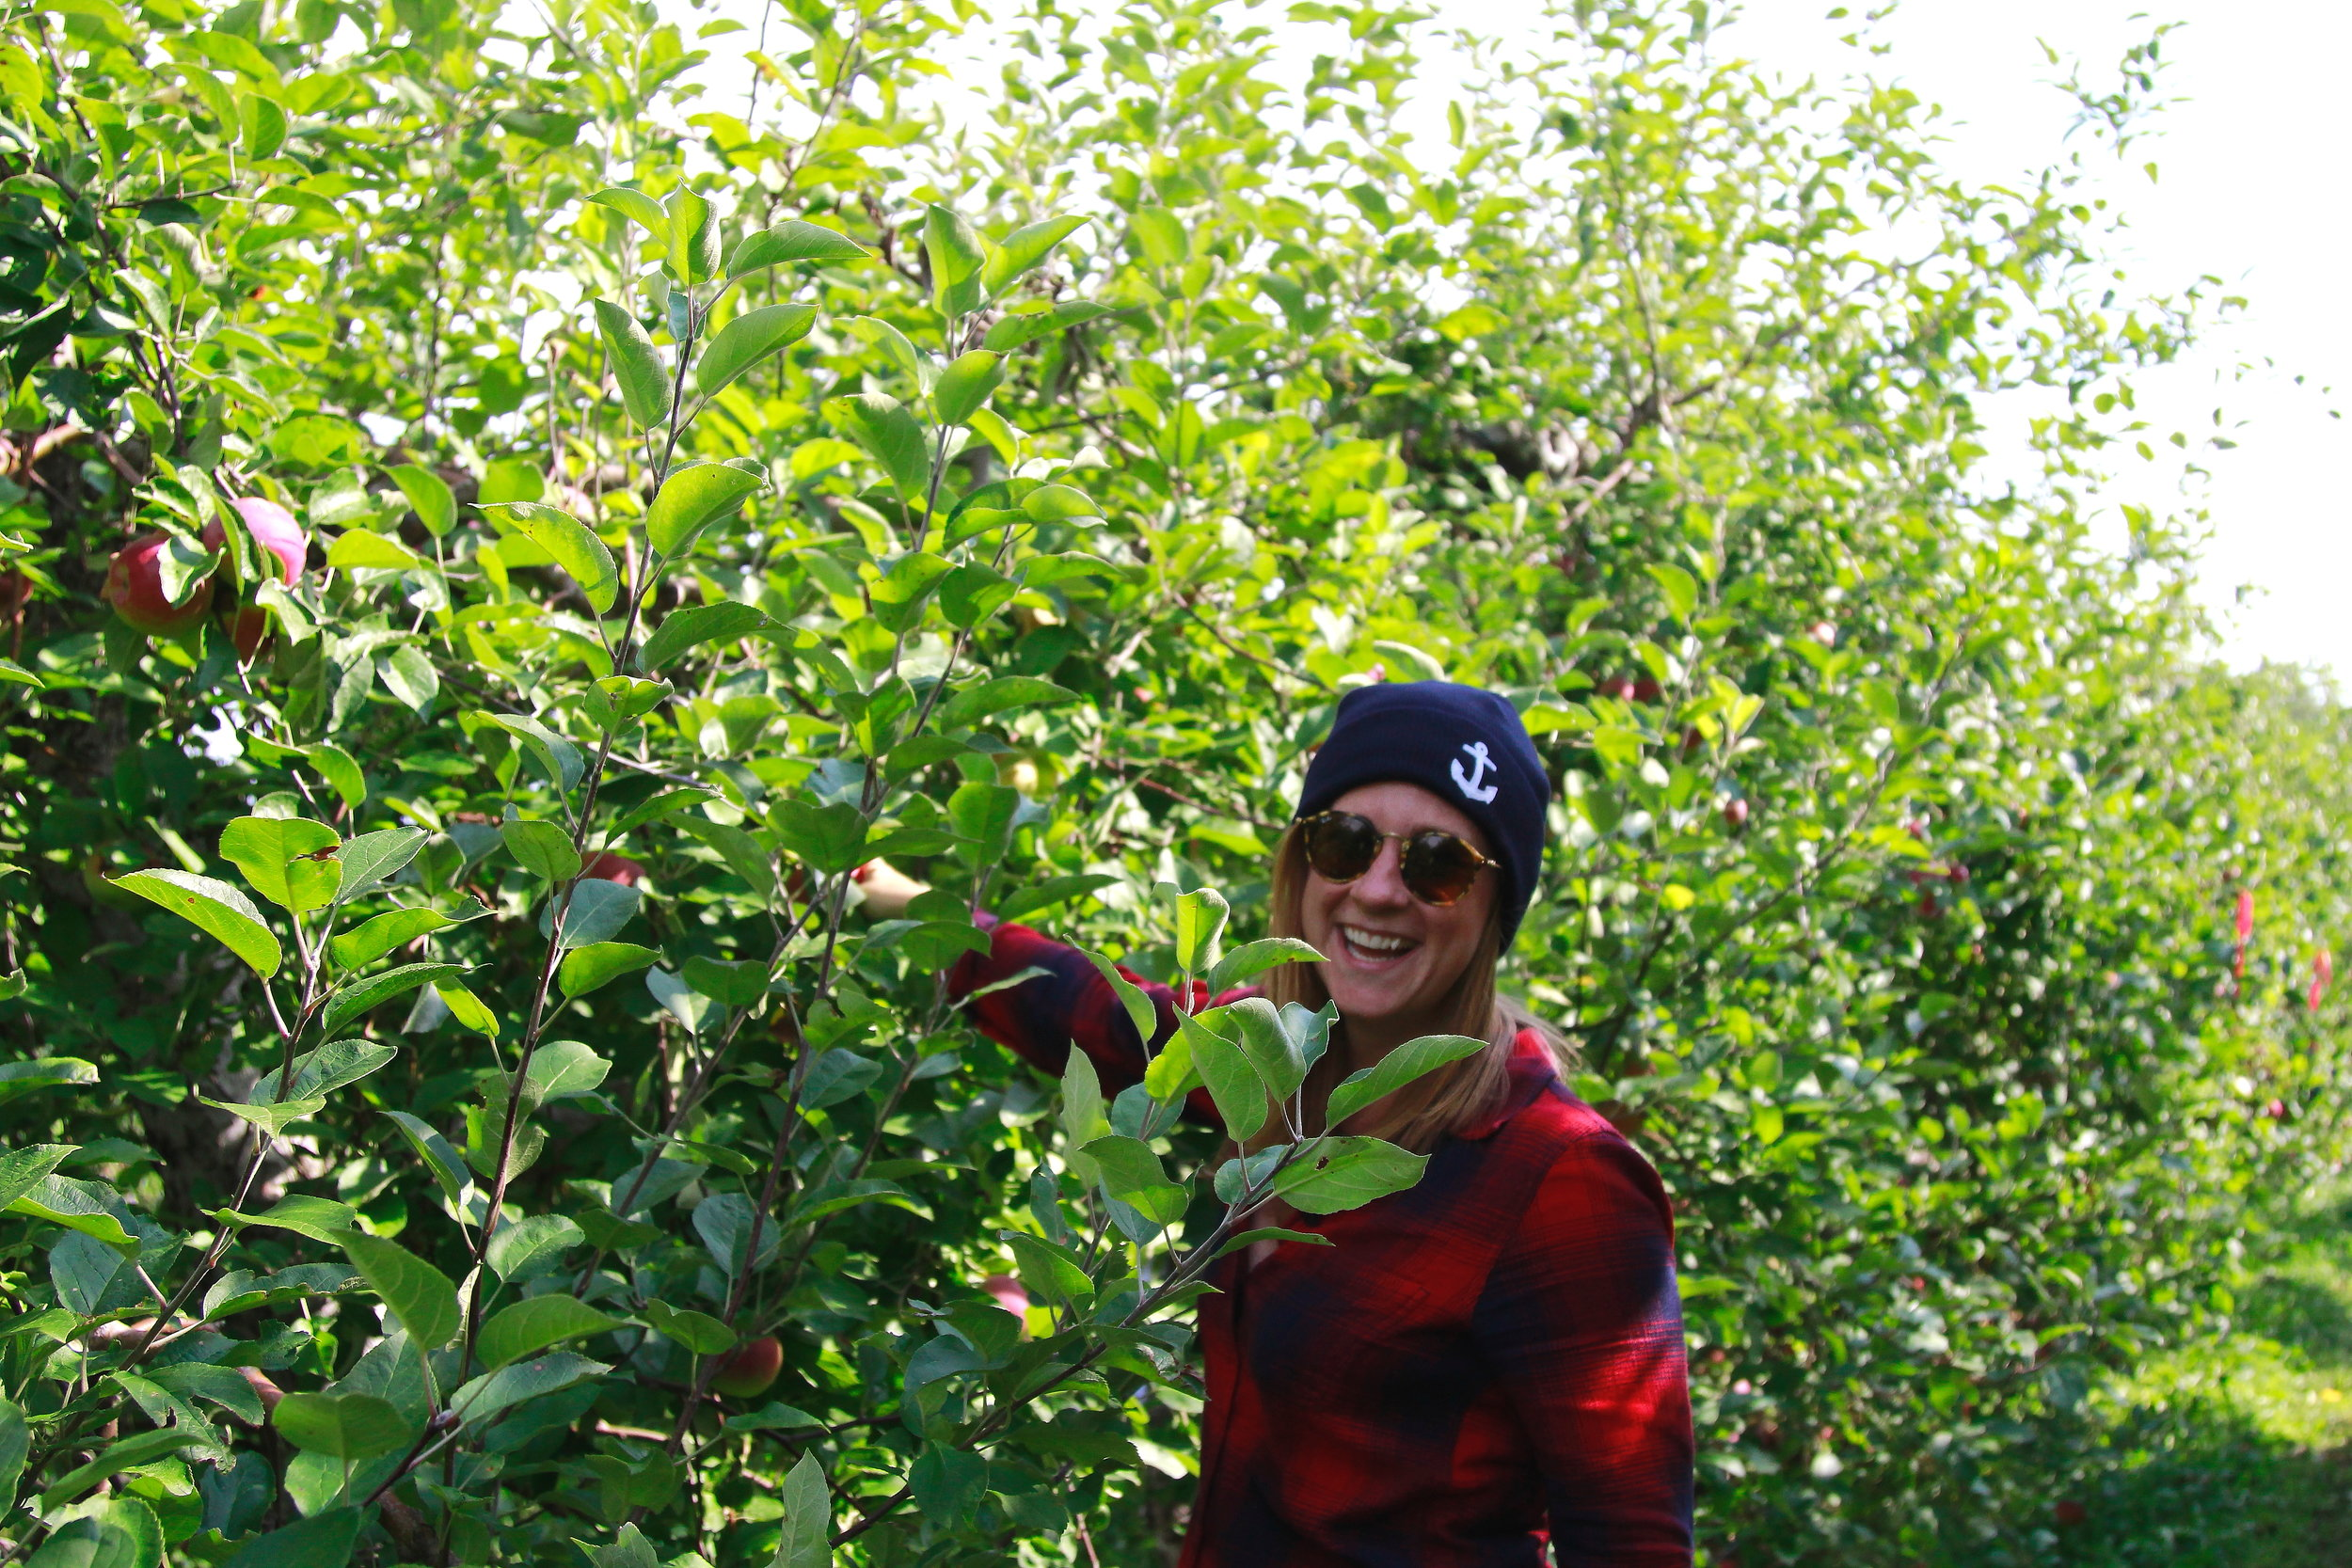 Apple picking at Applecrest Orchard!